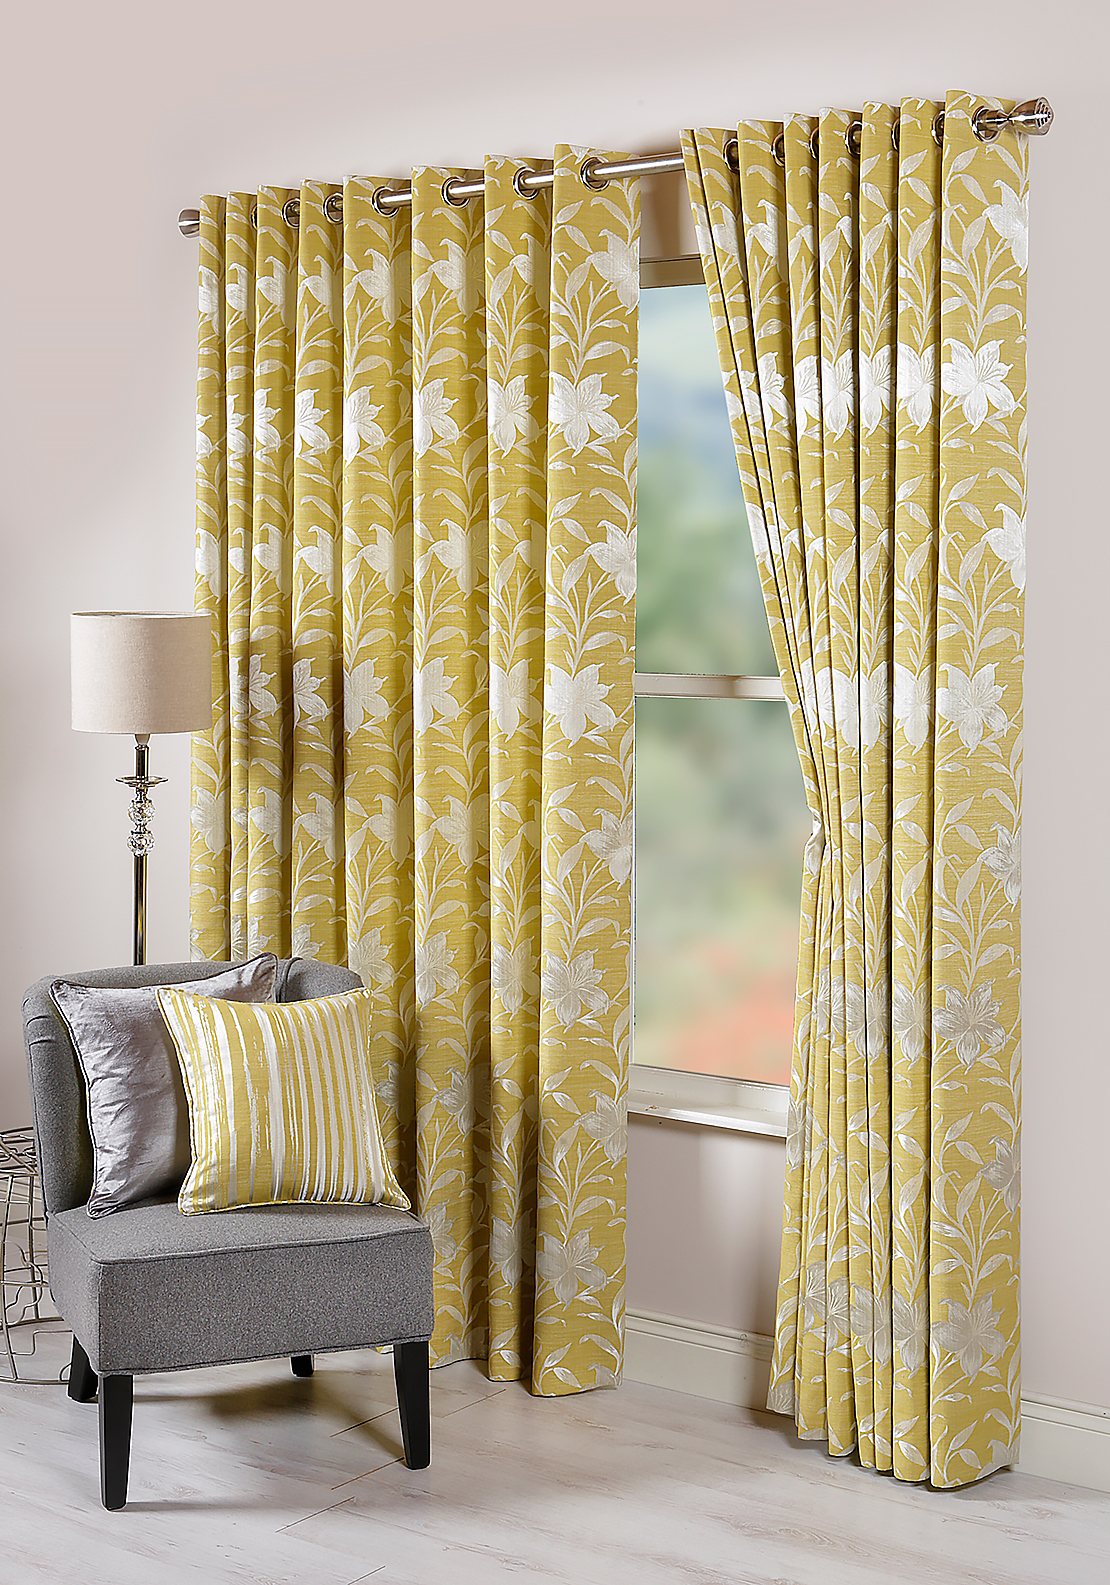 Scatterbox Nicola Floral Print Fully Lined Eyelet Curtains, Yellow 82cm x 90cm